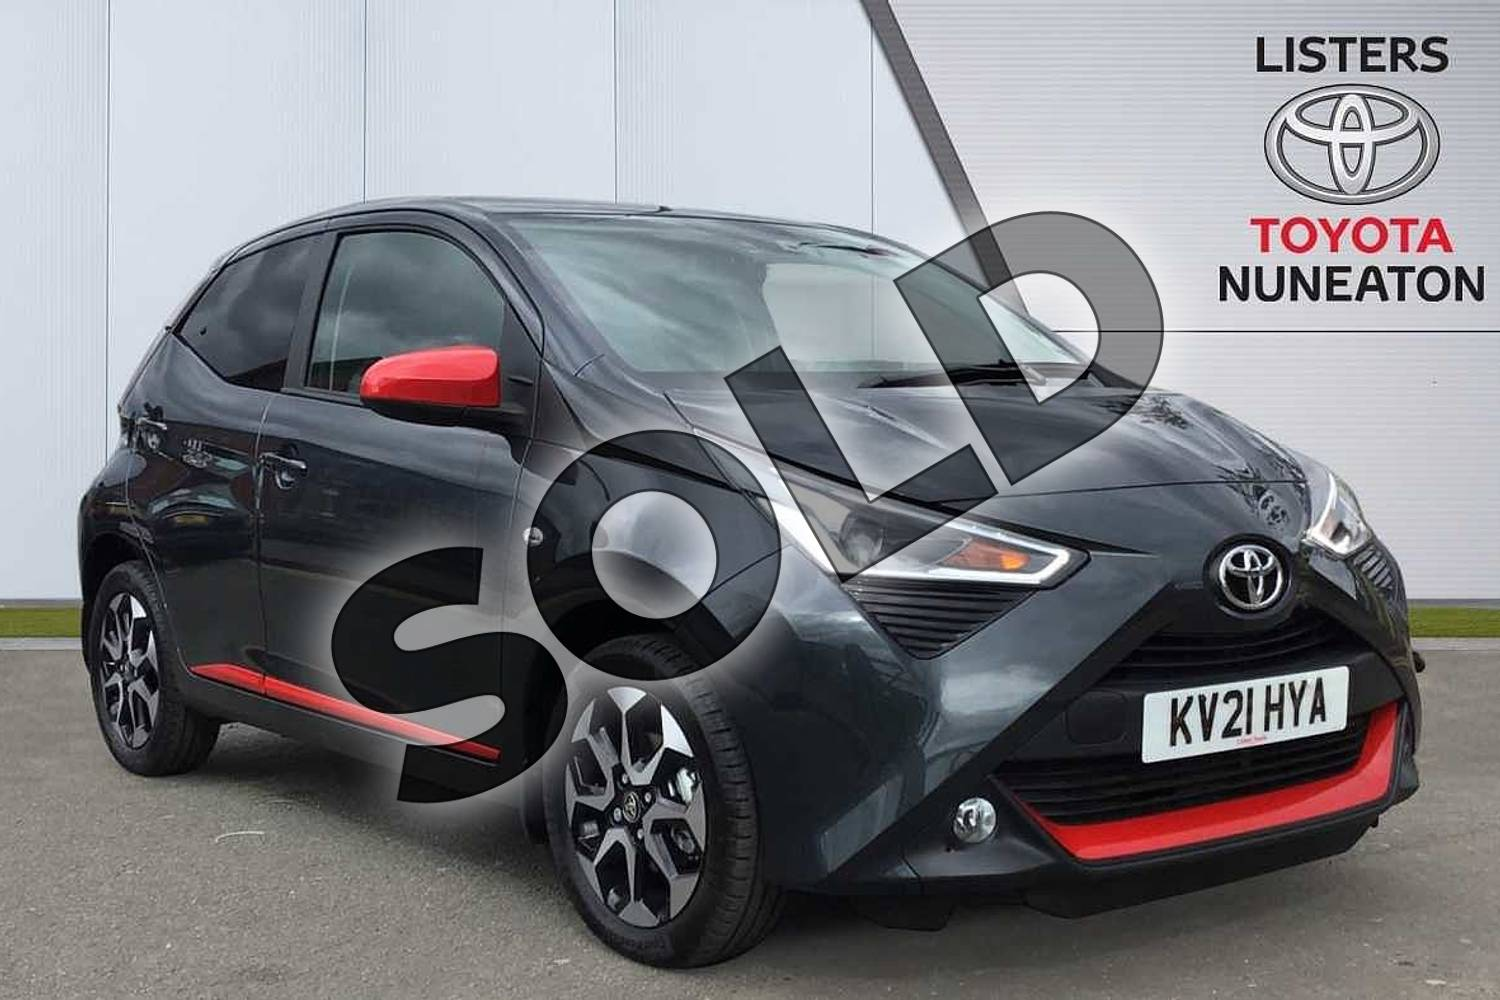 2021 Toyota Aygo Hatchback 1.0 VVT-i X-Trend TSS 5dr x-shift in Grey at Listers Toyota Nuneaton